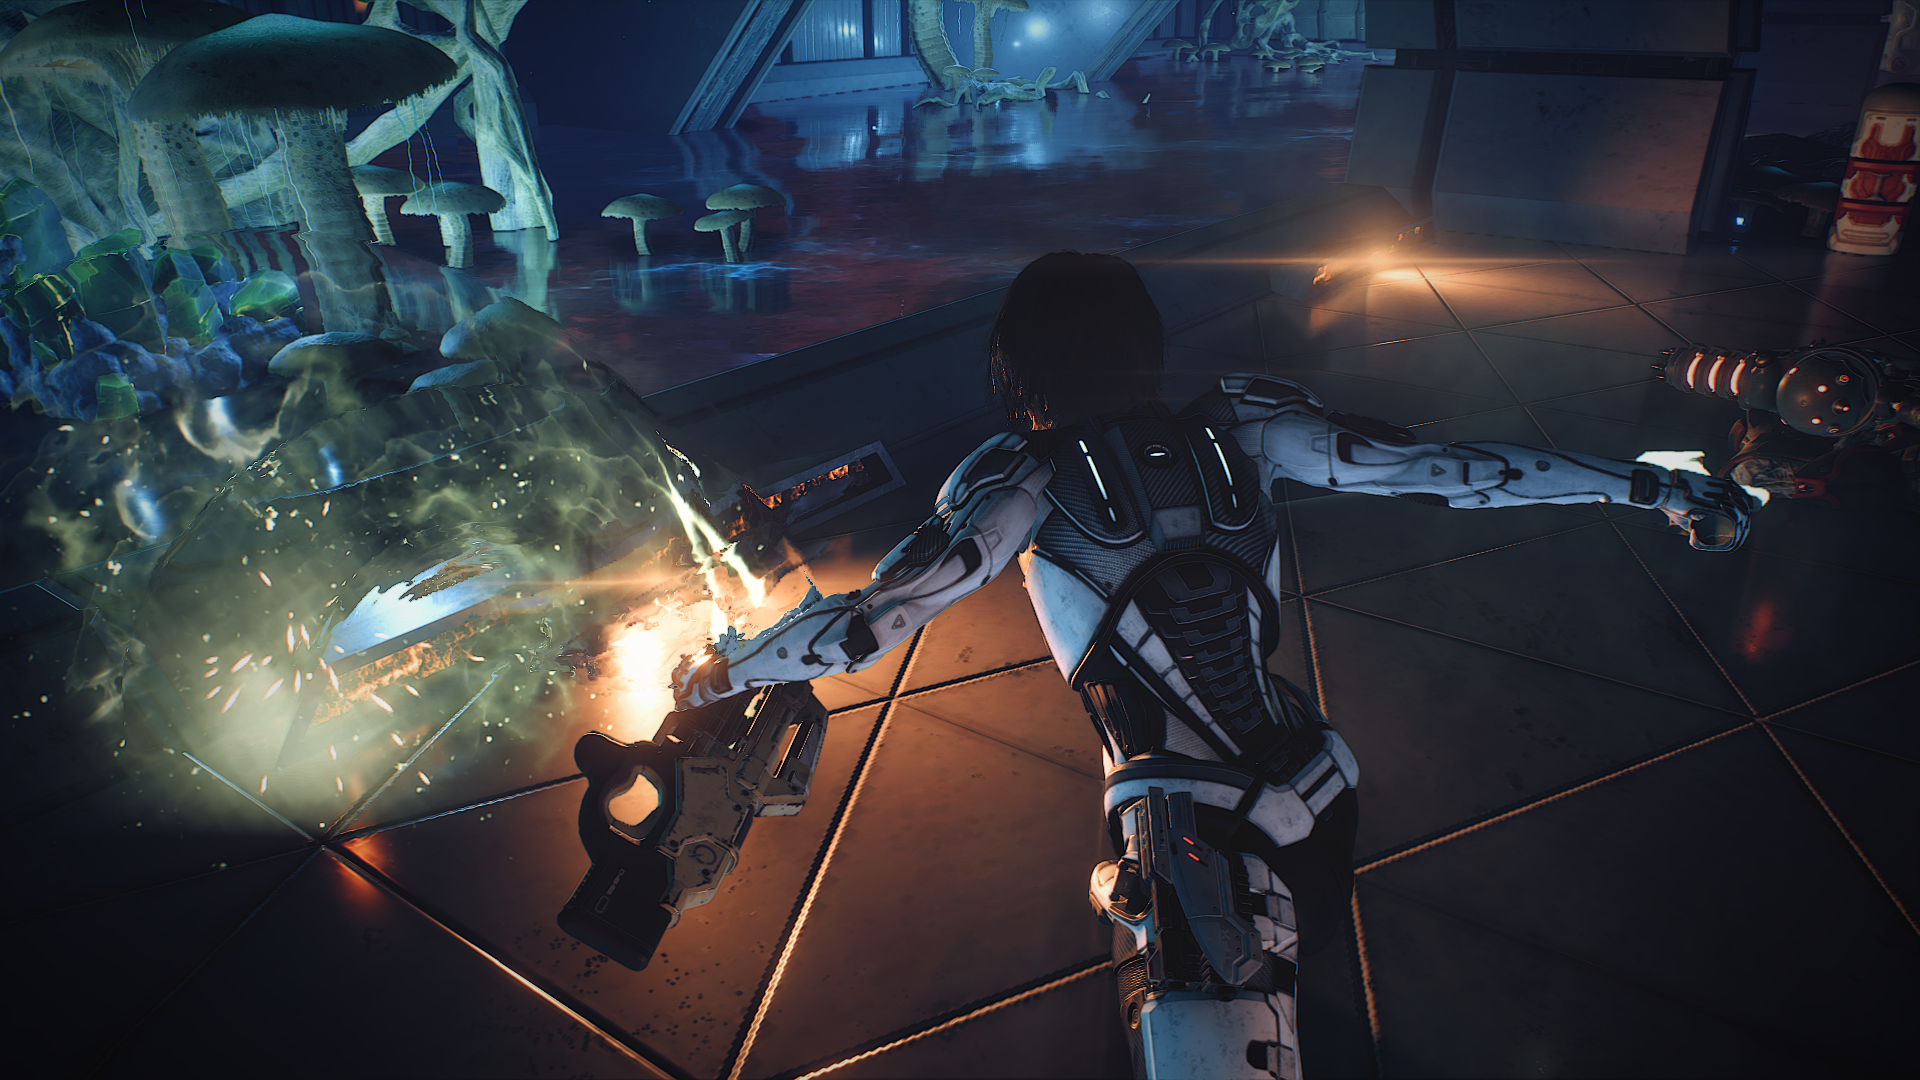 Mass Effect Andromeda Screenshot 2017.08.06 - 01.07.01.63.png - Mass Effect: Andromeda